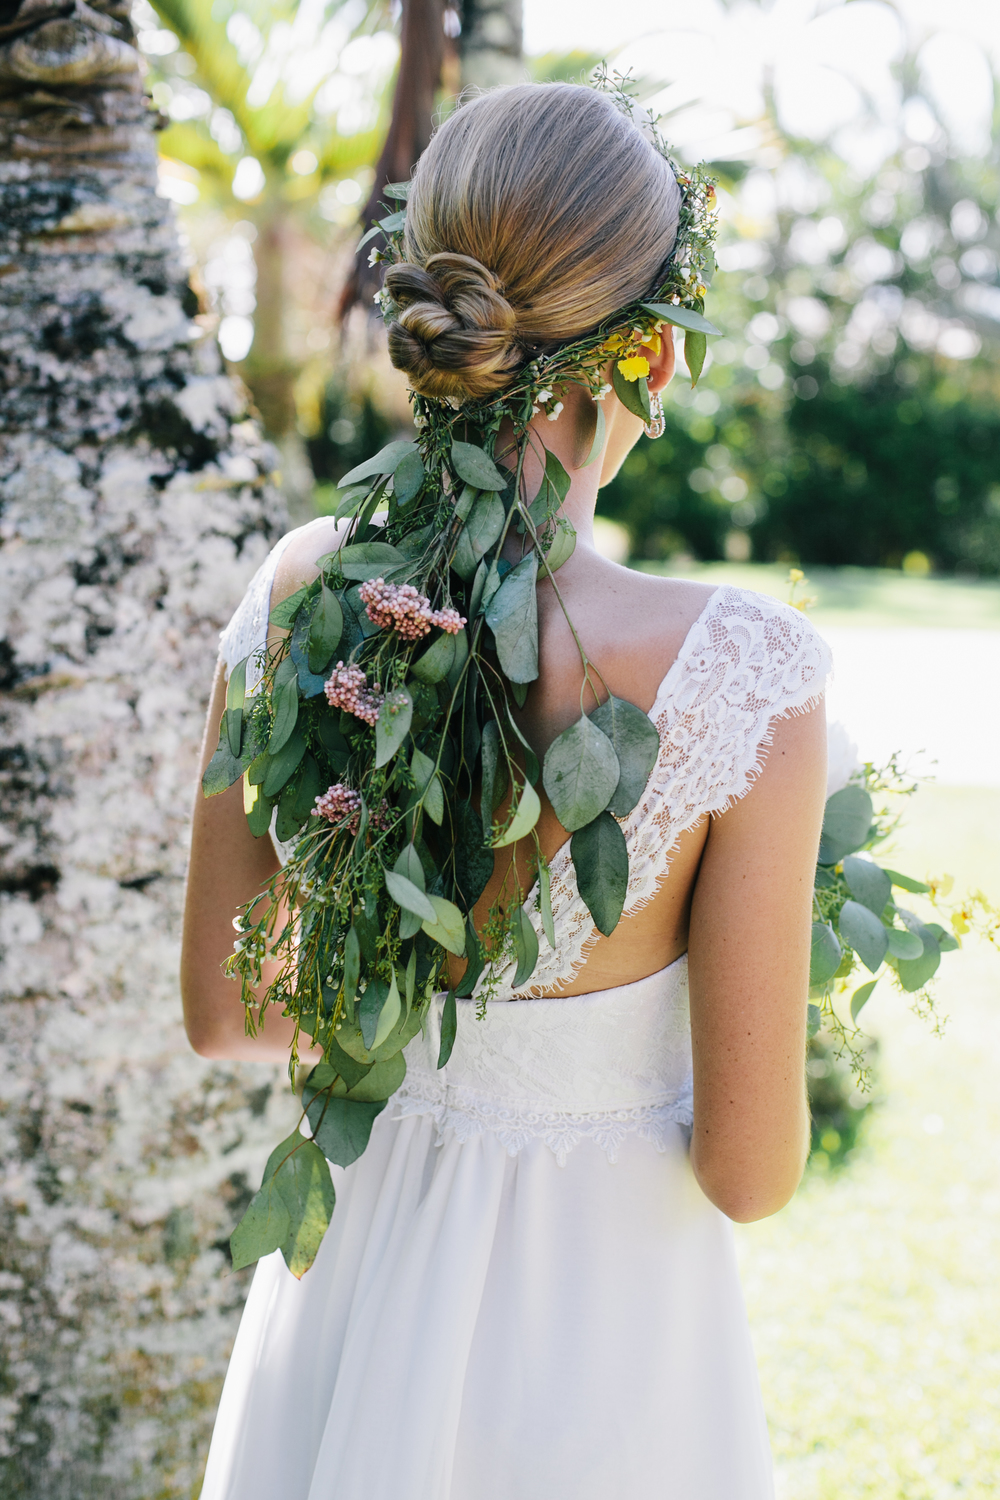 boho flower veil by Passion Roots | Meghan Nicole Photography | Oahu, Hawaii